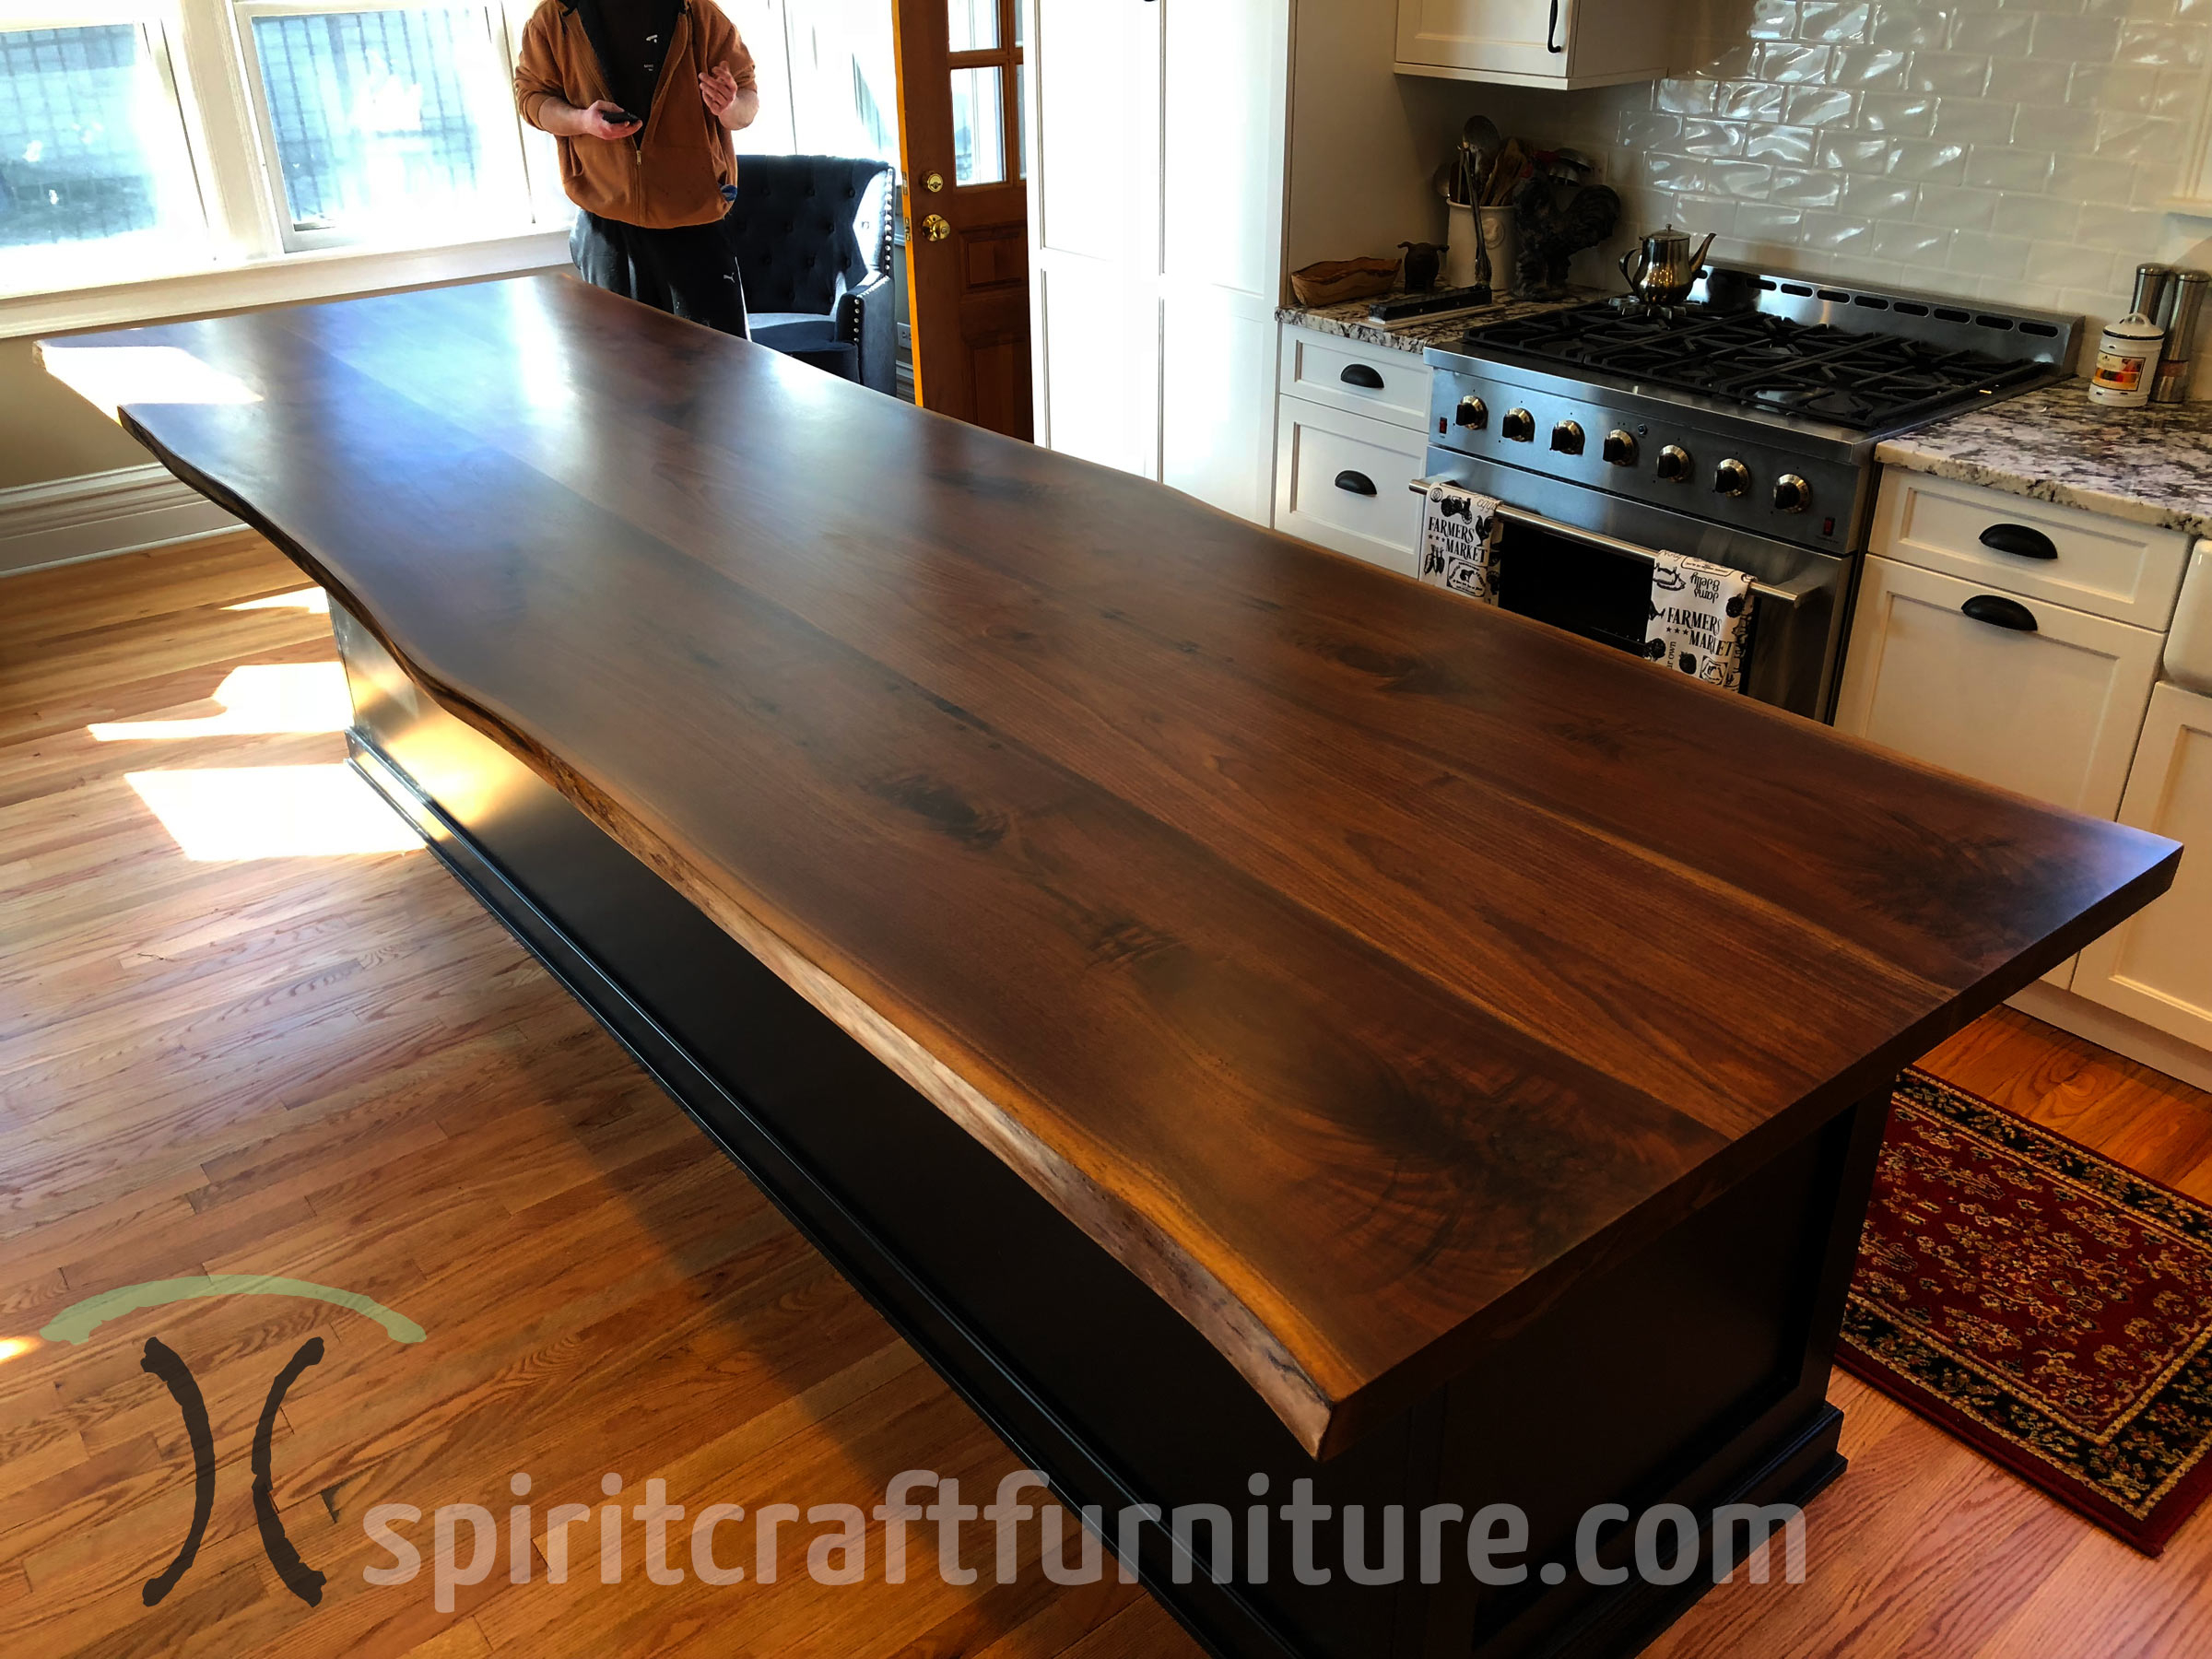 Inspiration about Most Current Falmer 3 Piece Solid Wood Dining Sets With Reviews And Client Testimonials – Spiritcraft Furniture (#10 of 20)